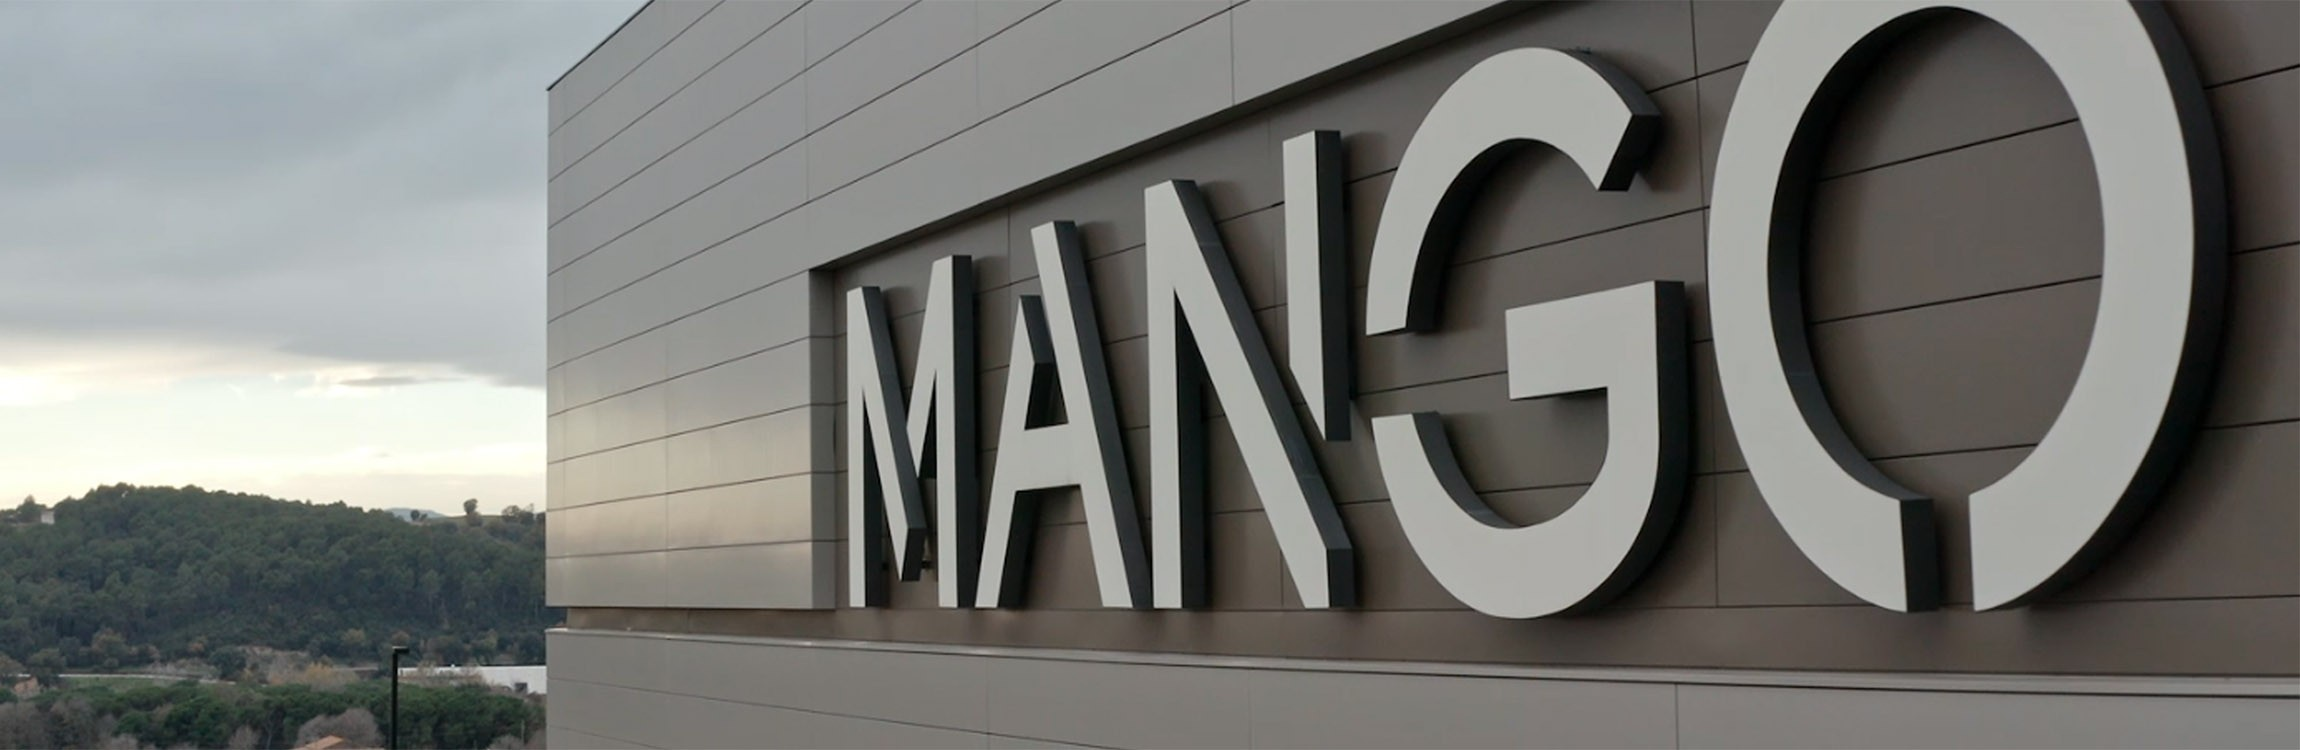 Mango: Efficient and streamlined process - from goods-receipt to goods-issue.